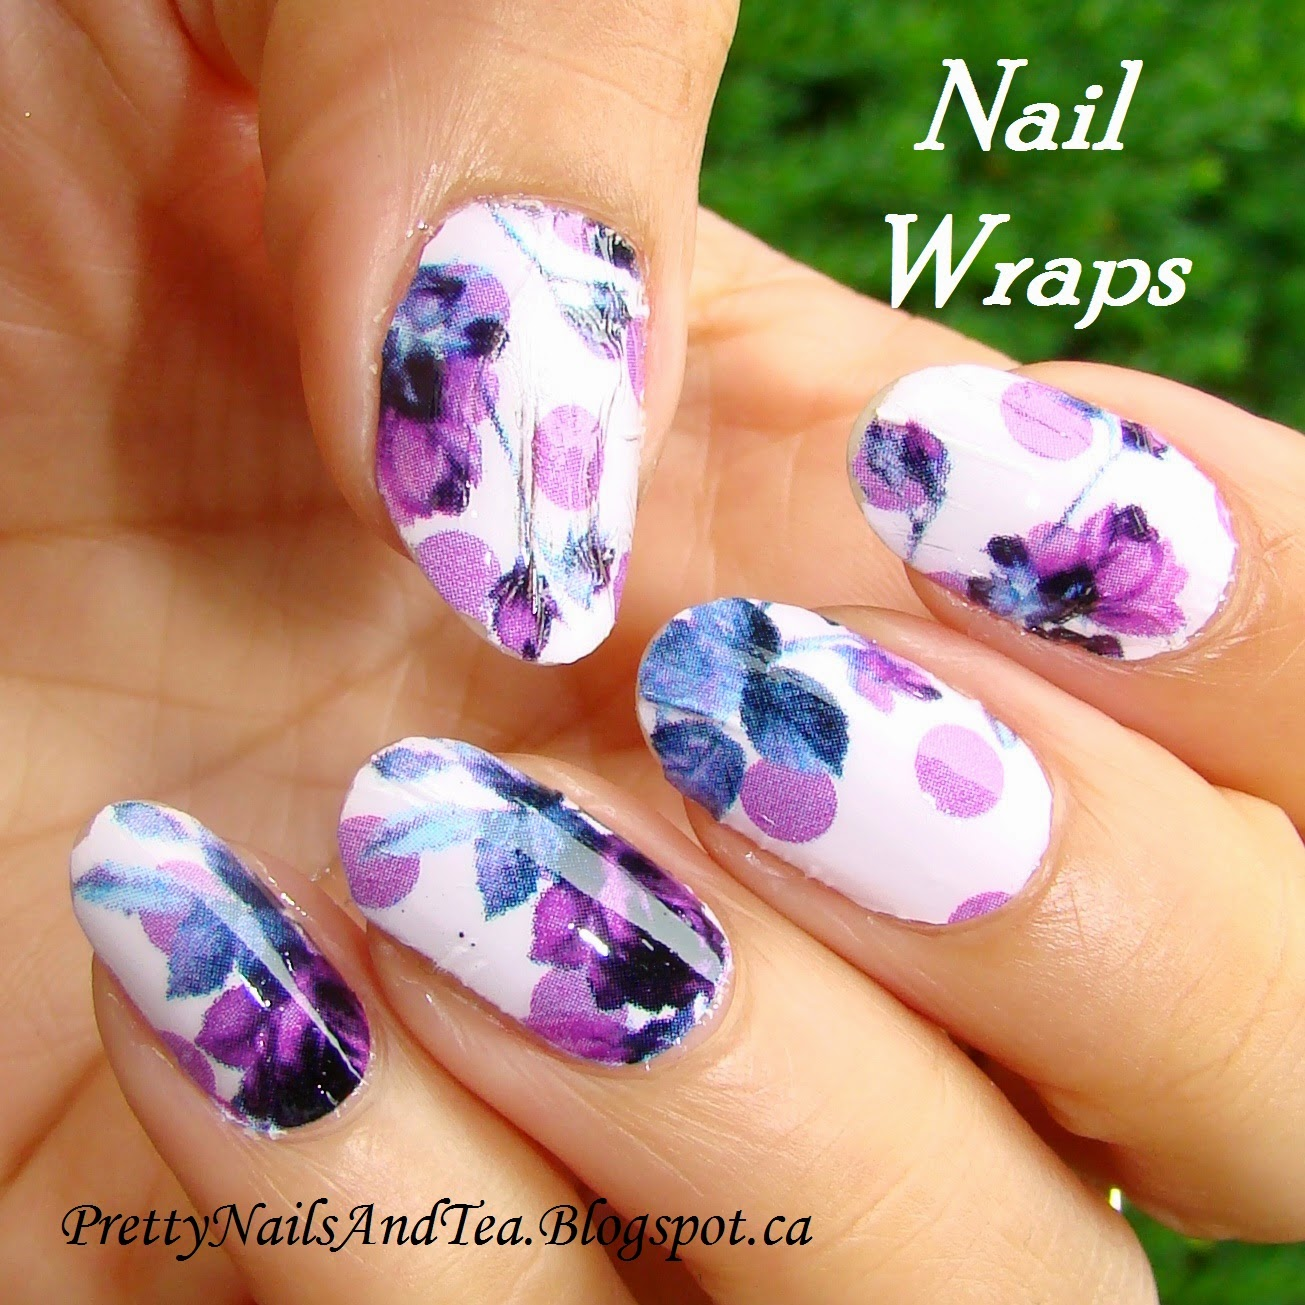 Nail Wrap Review | PrettyNailsAndTea.blogspot.ca